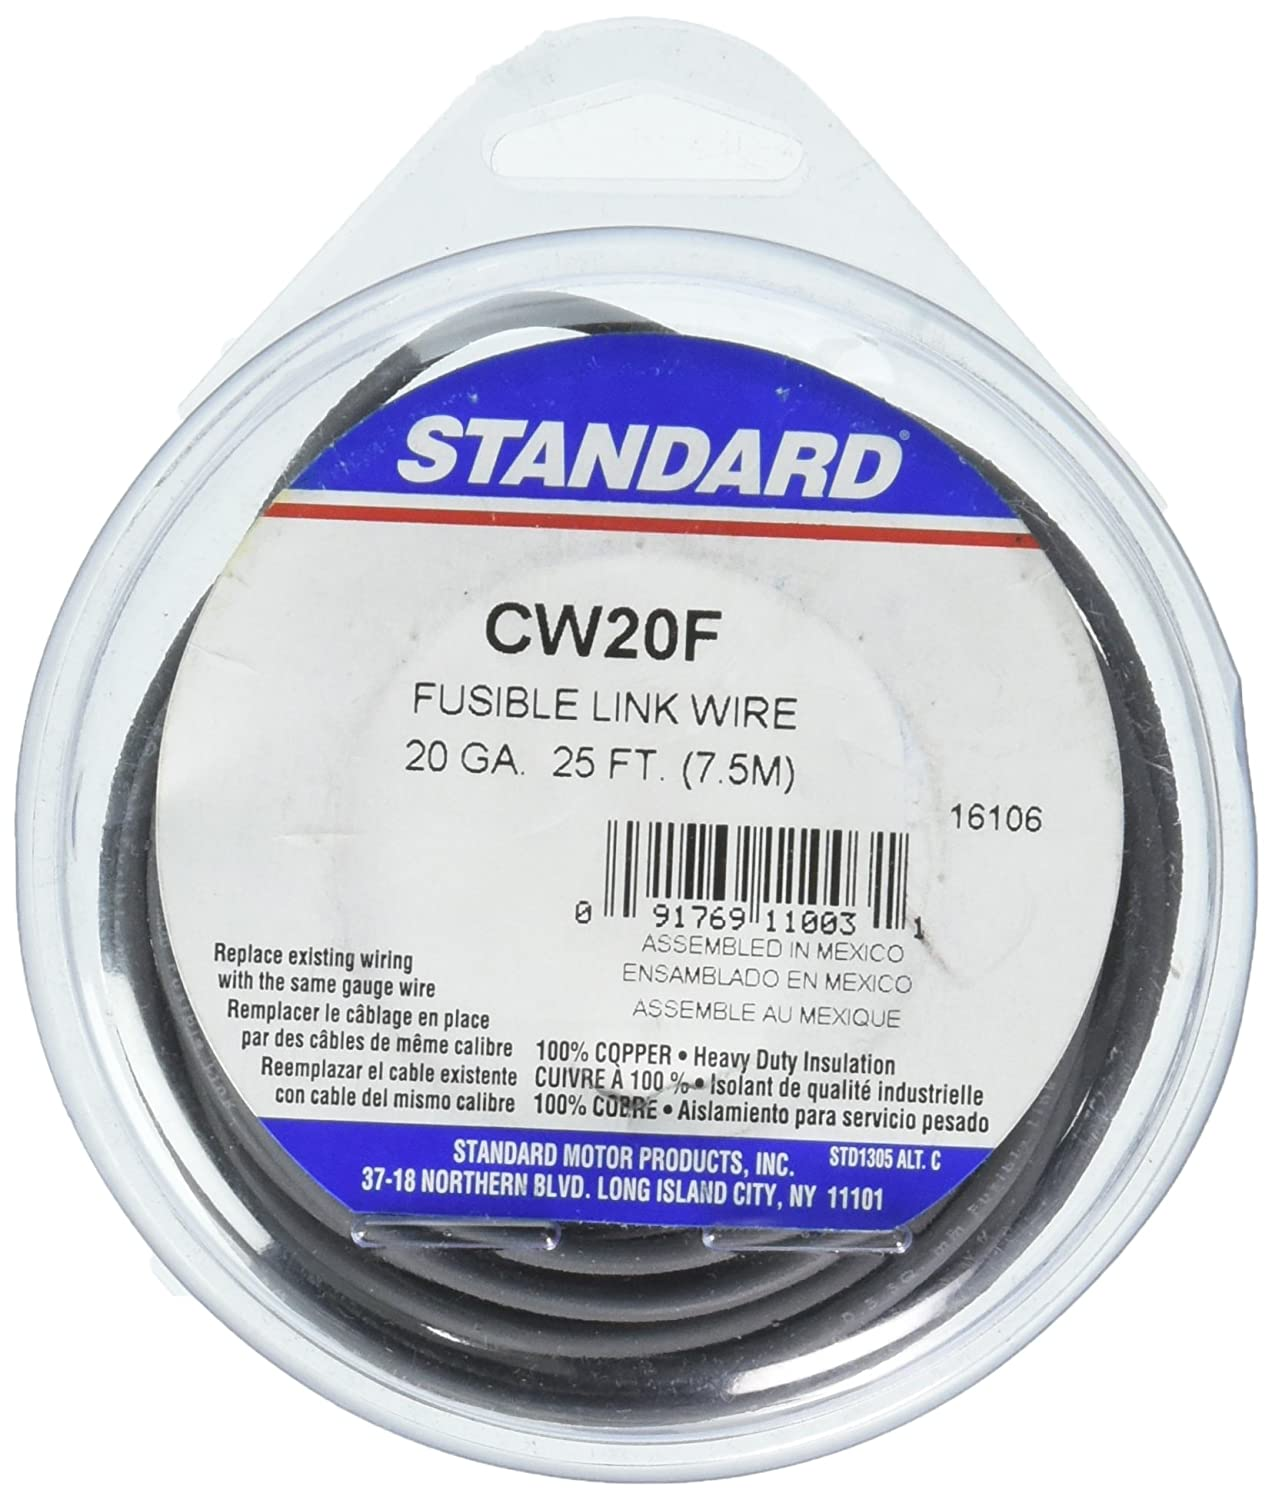 Standard Motor Products CW20F Fusible Link Wire